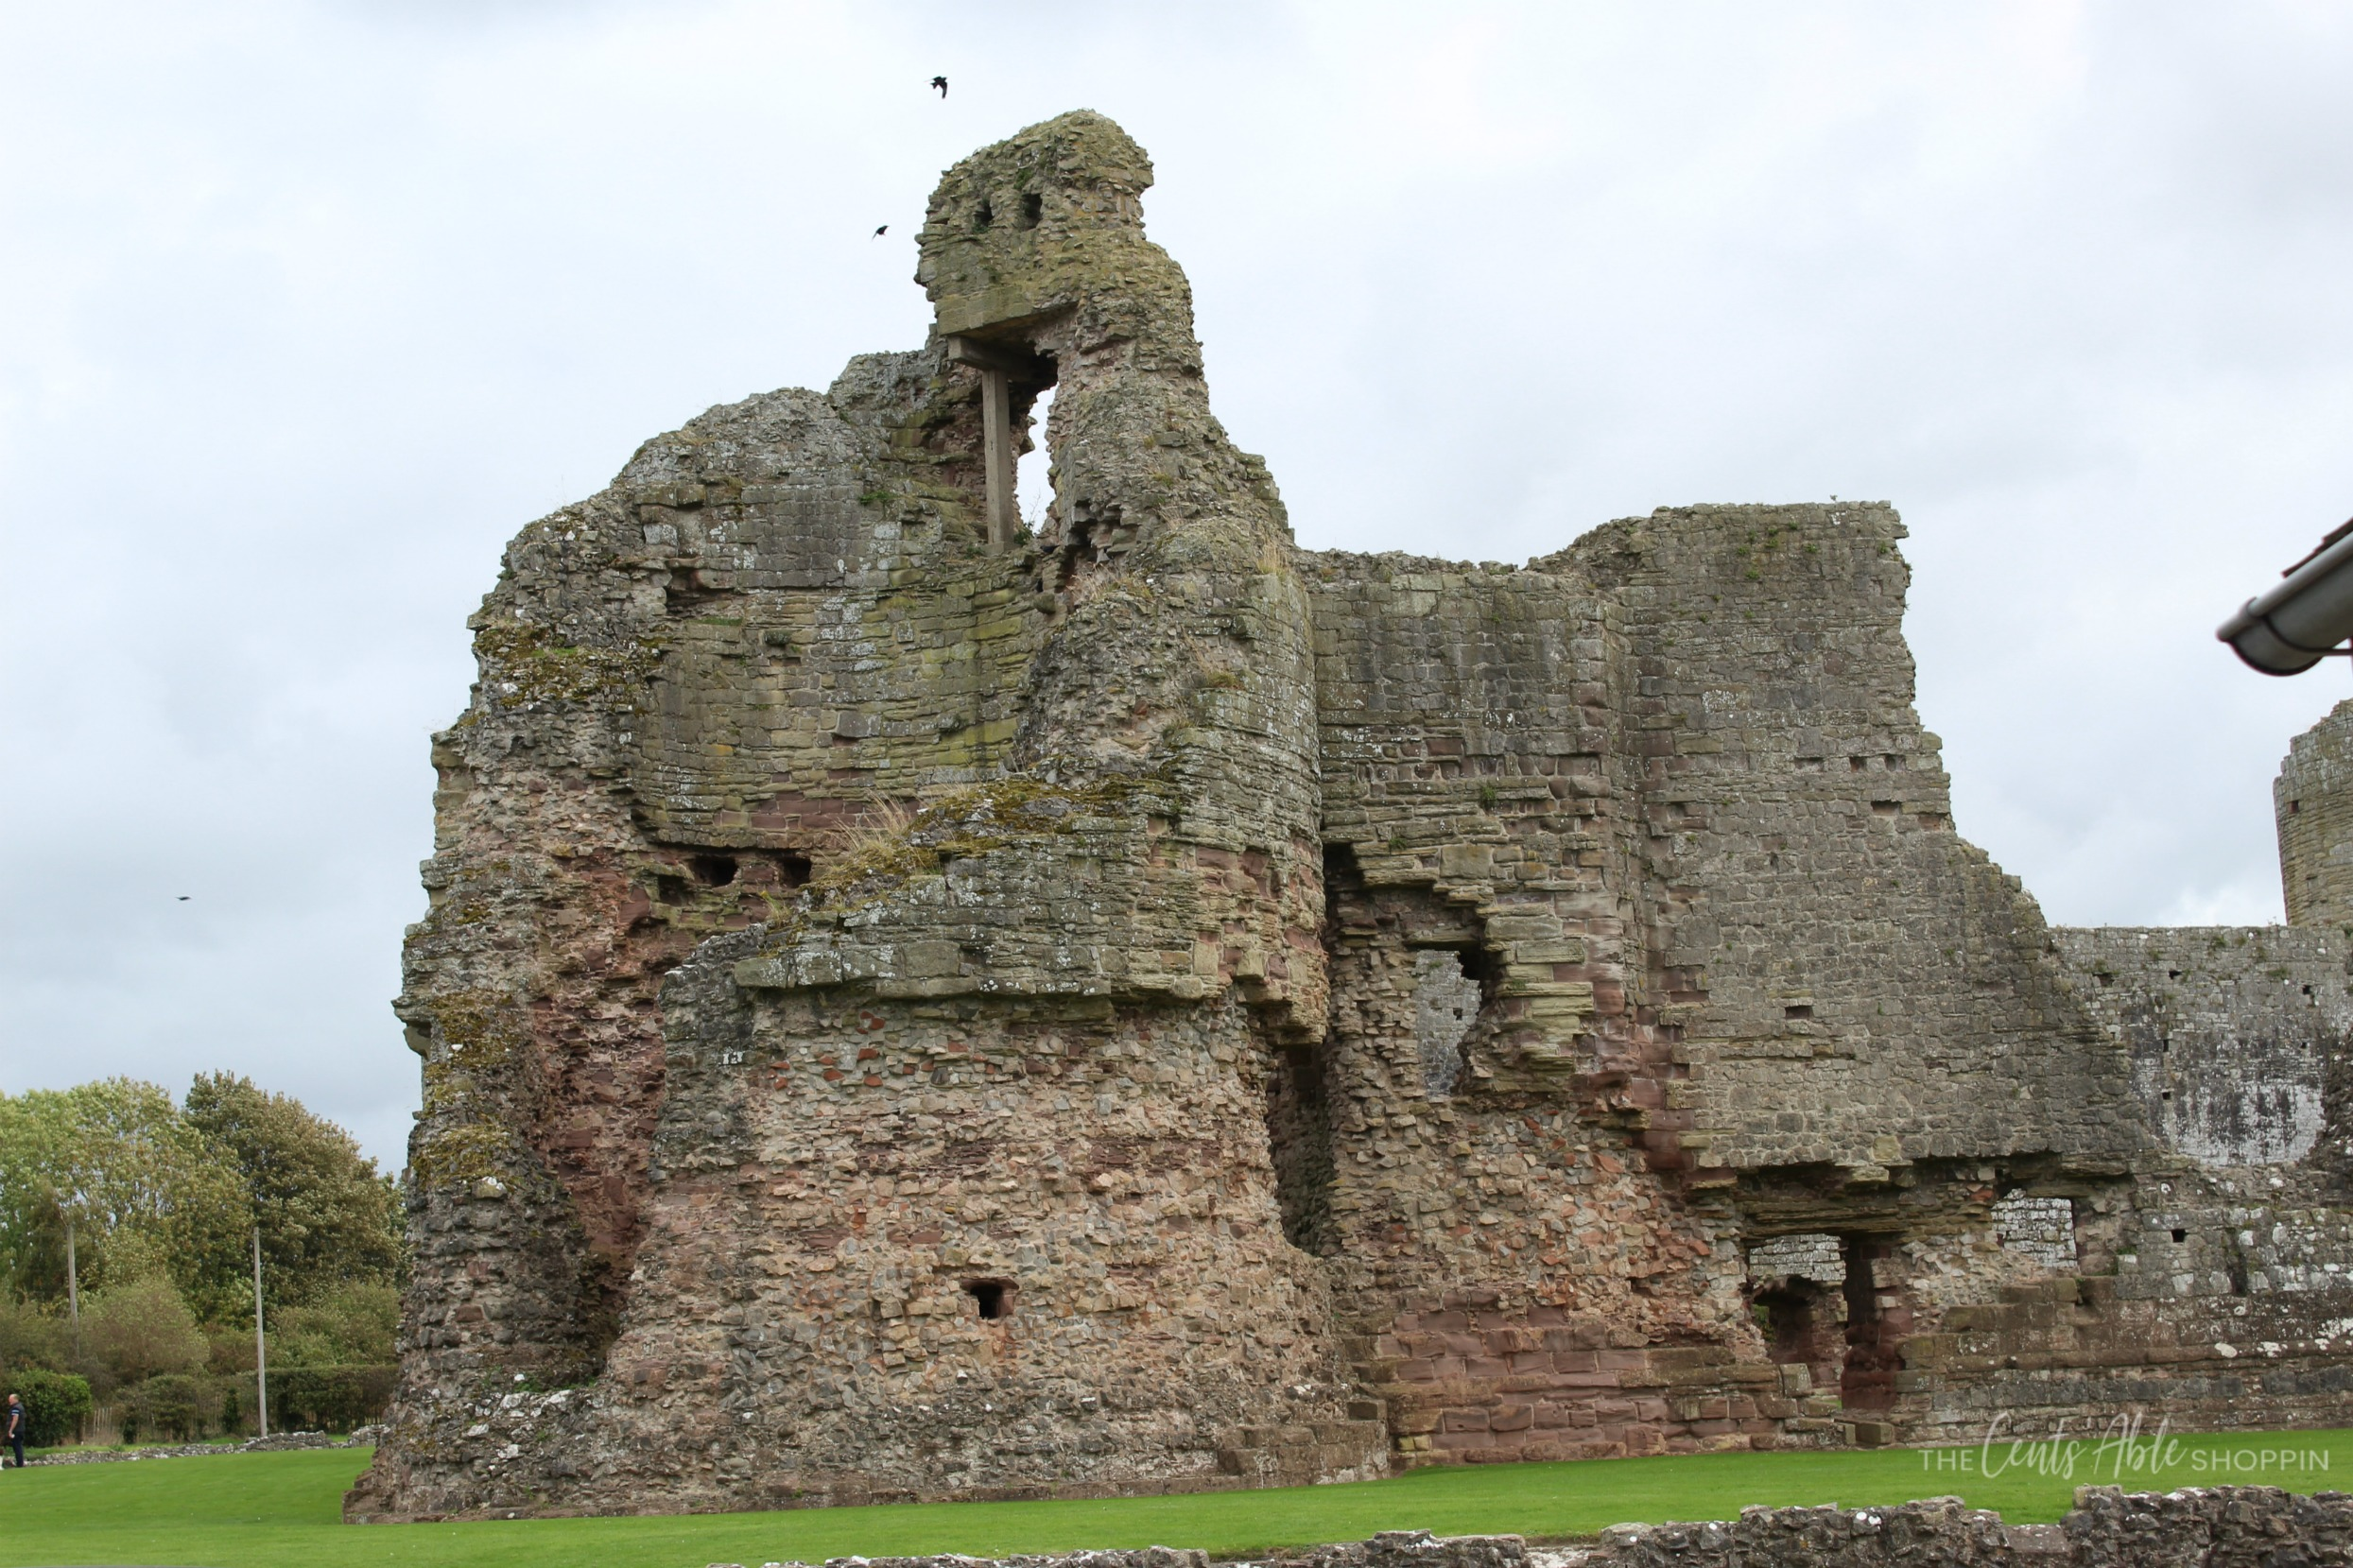 Castle \\  Rhuddlan Castle is a castle located in Rhuddlan, Denbighshire, Wales. It was one of a series of castles erected by King Edward I in 1277.